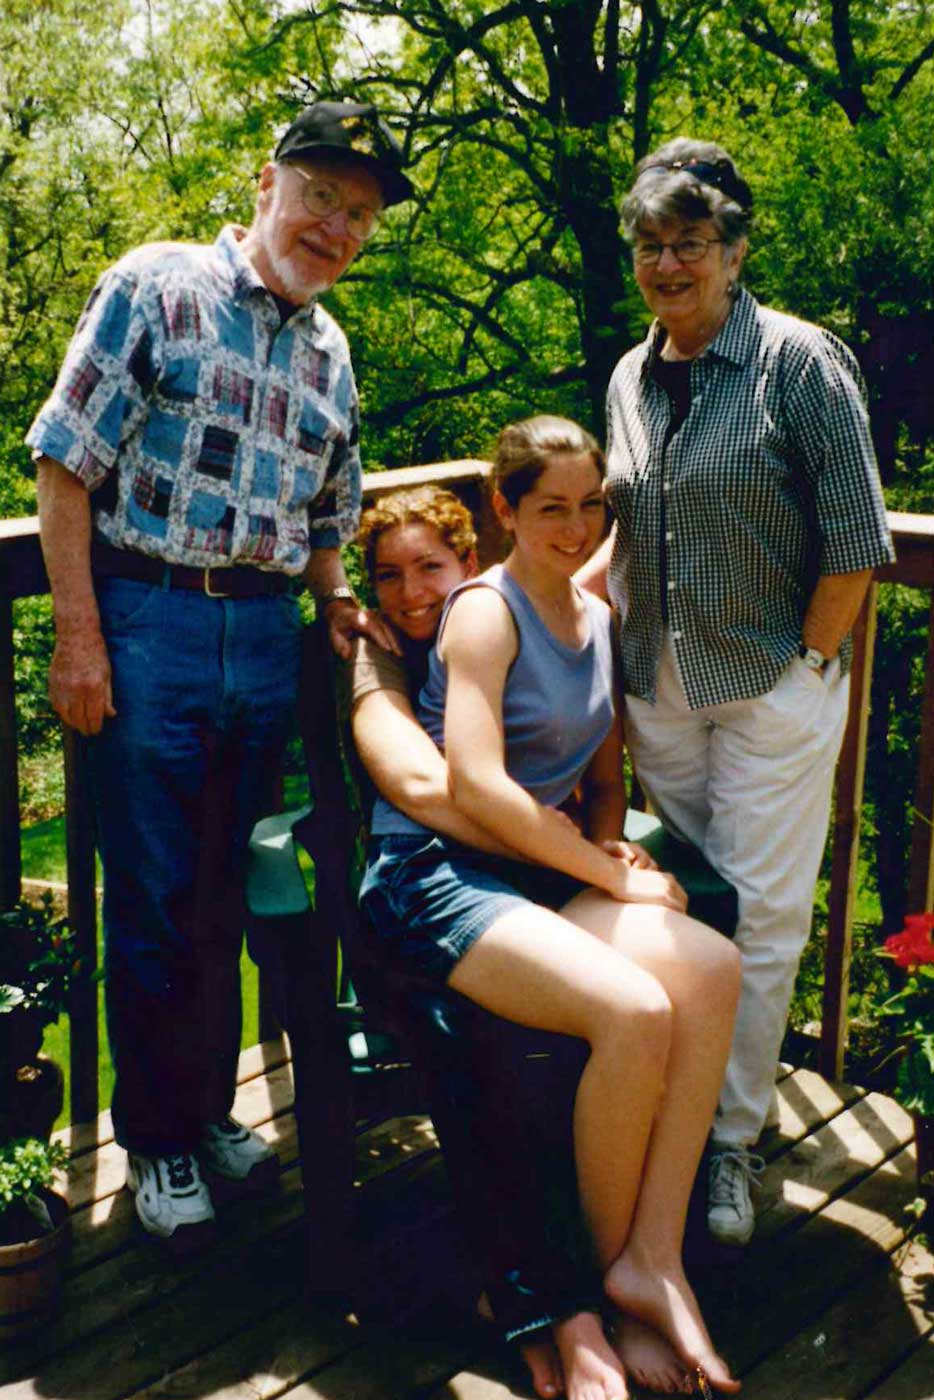 The author, Elizabeth O'Herrin, and her sister Colleen with her grandfather and grandmother in Wisconsin. Courtesy of Elizabeth O'Herrin